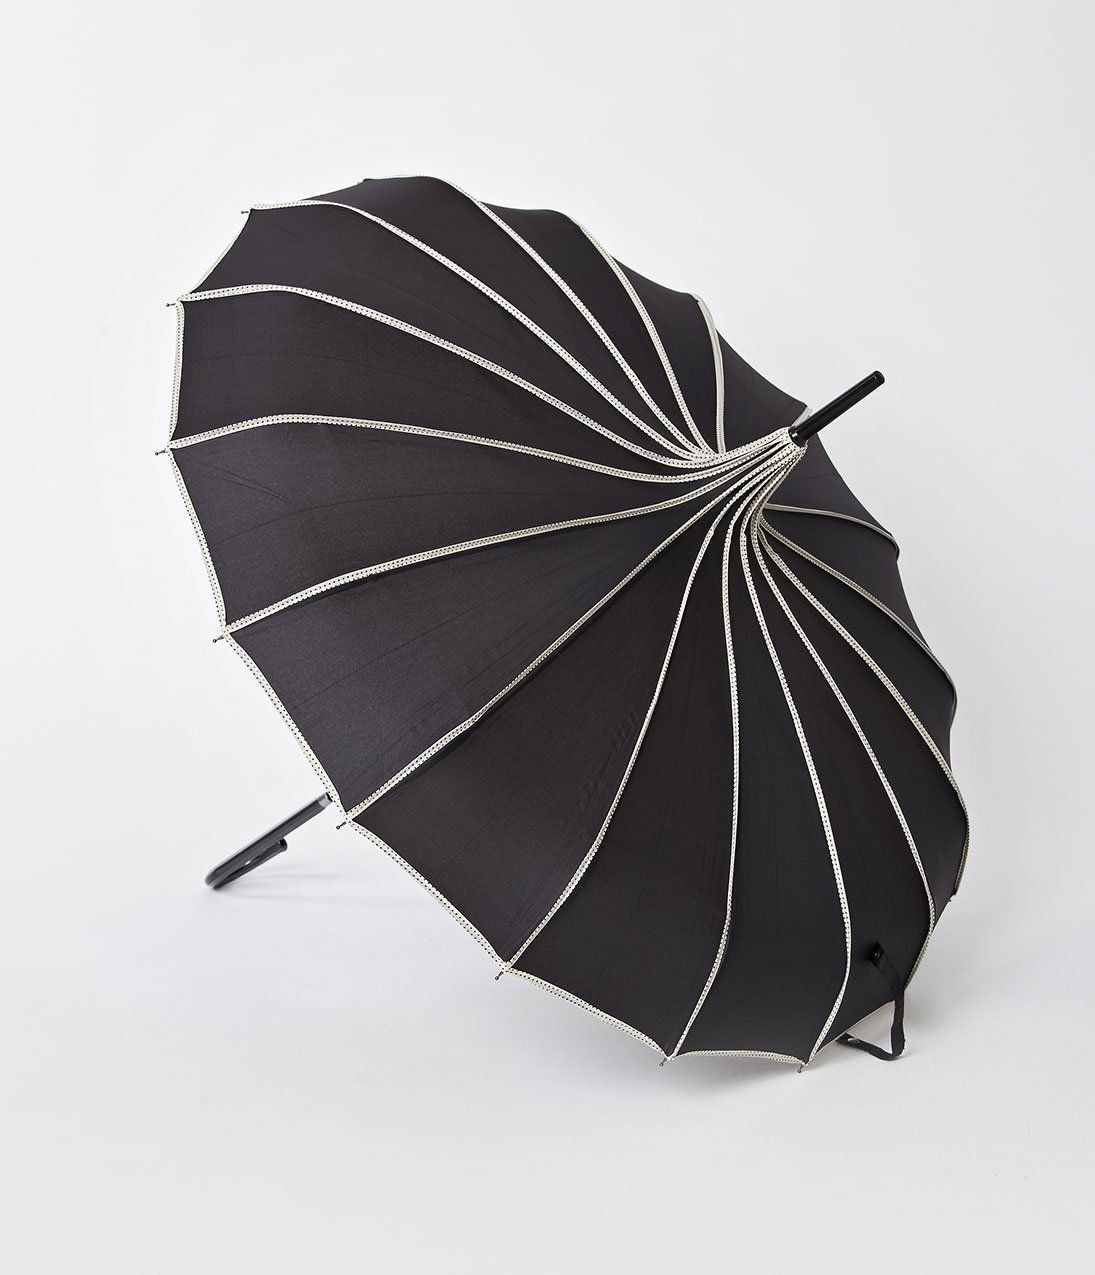 Forum on this topic: Umbrellas as Fashion Accessories: How to Choose , umbrellas-as-fashion-accessories-how-to-choose/